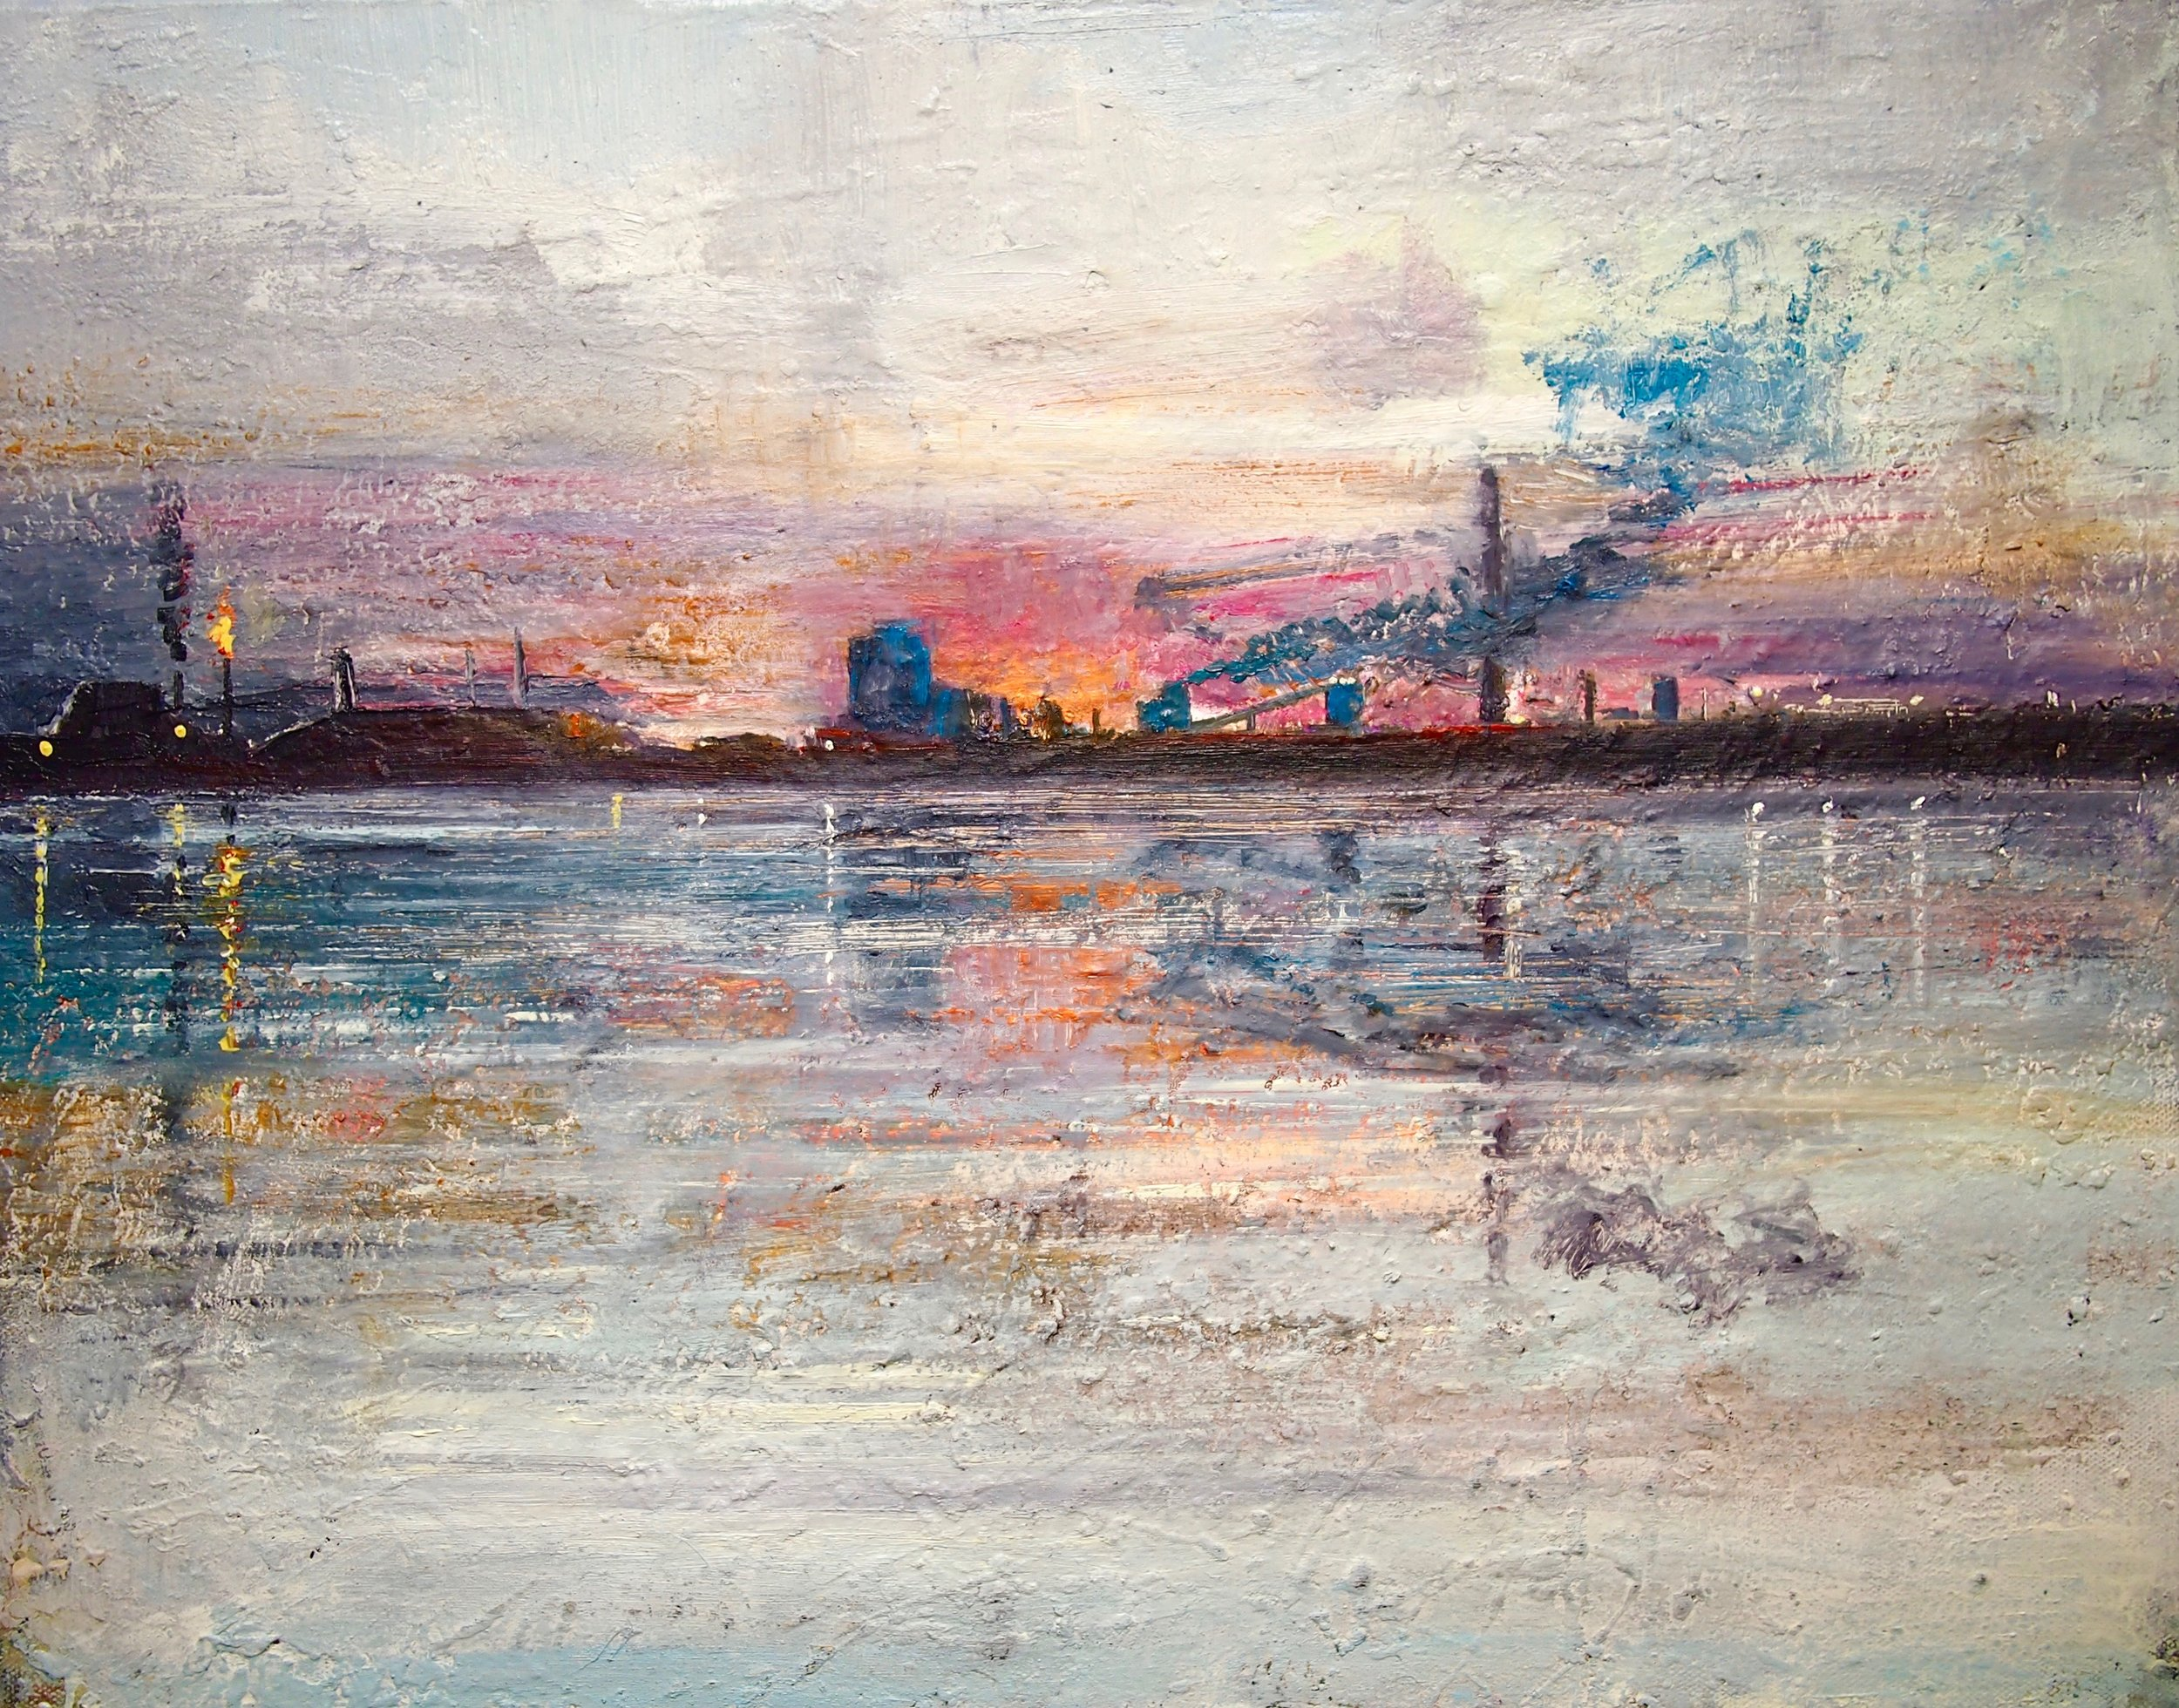 Port Talbot, Reflections - 50 x 40 cm